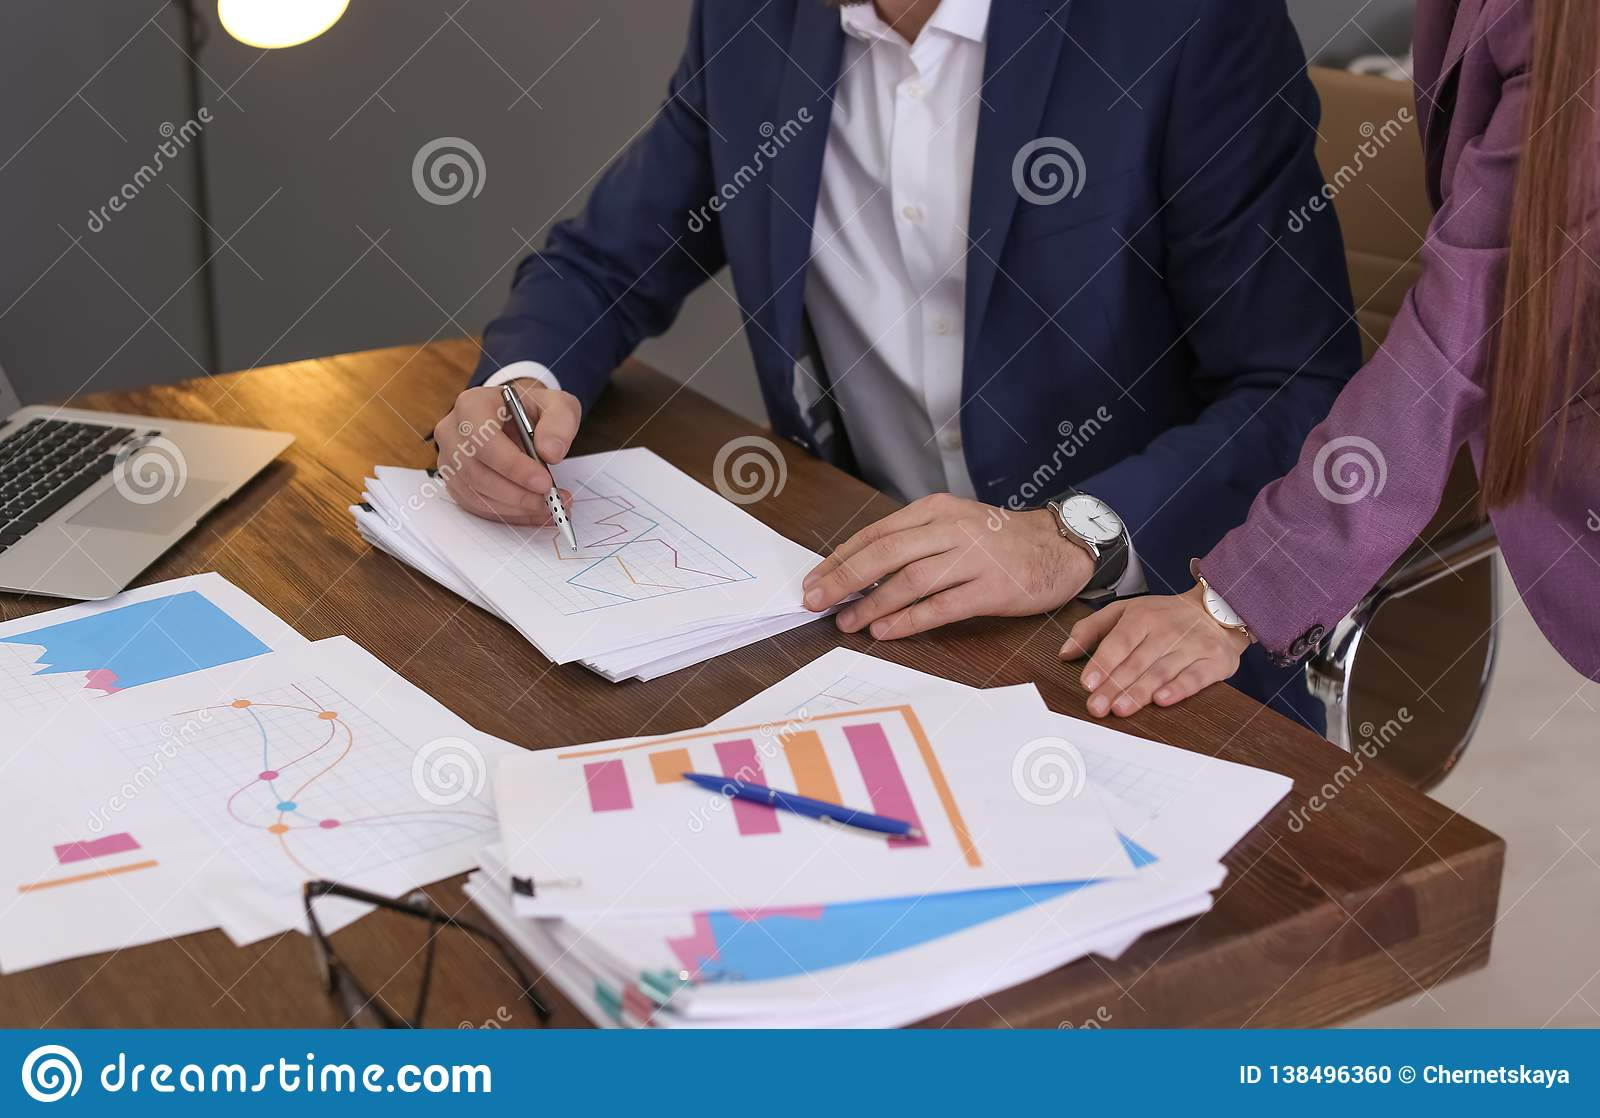 Businessman and assistant working with documents at table